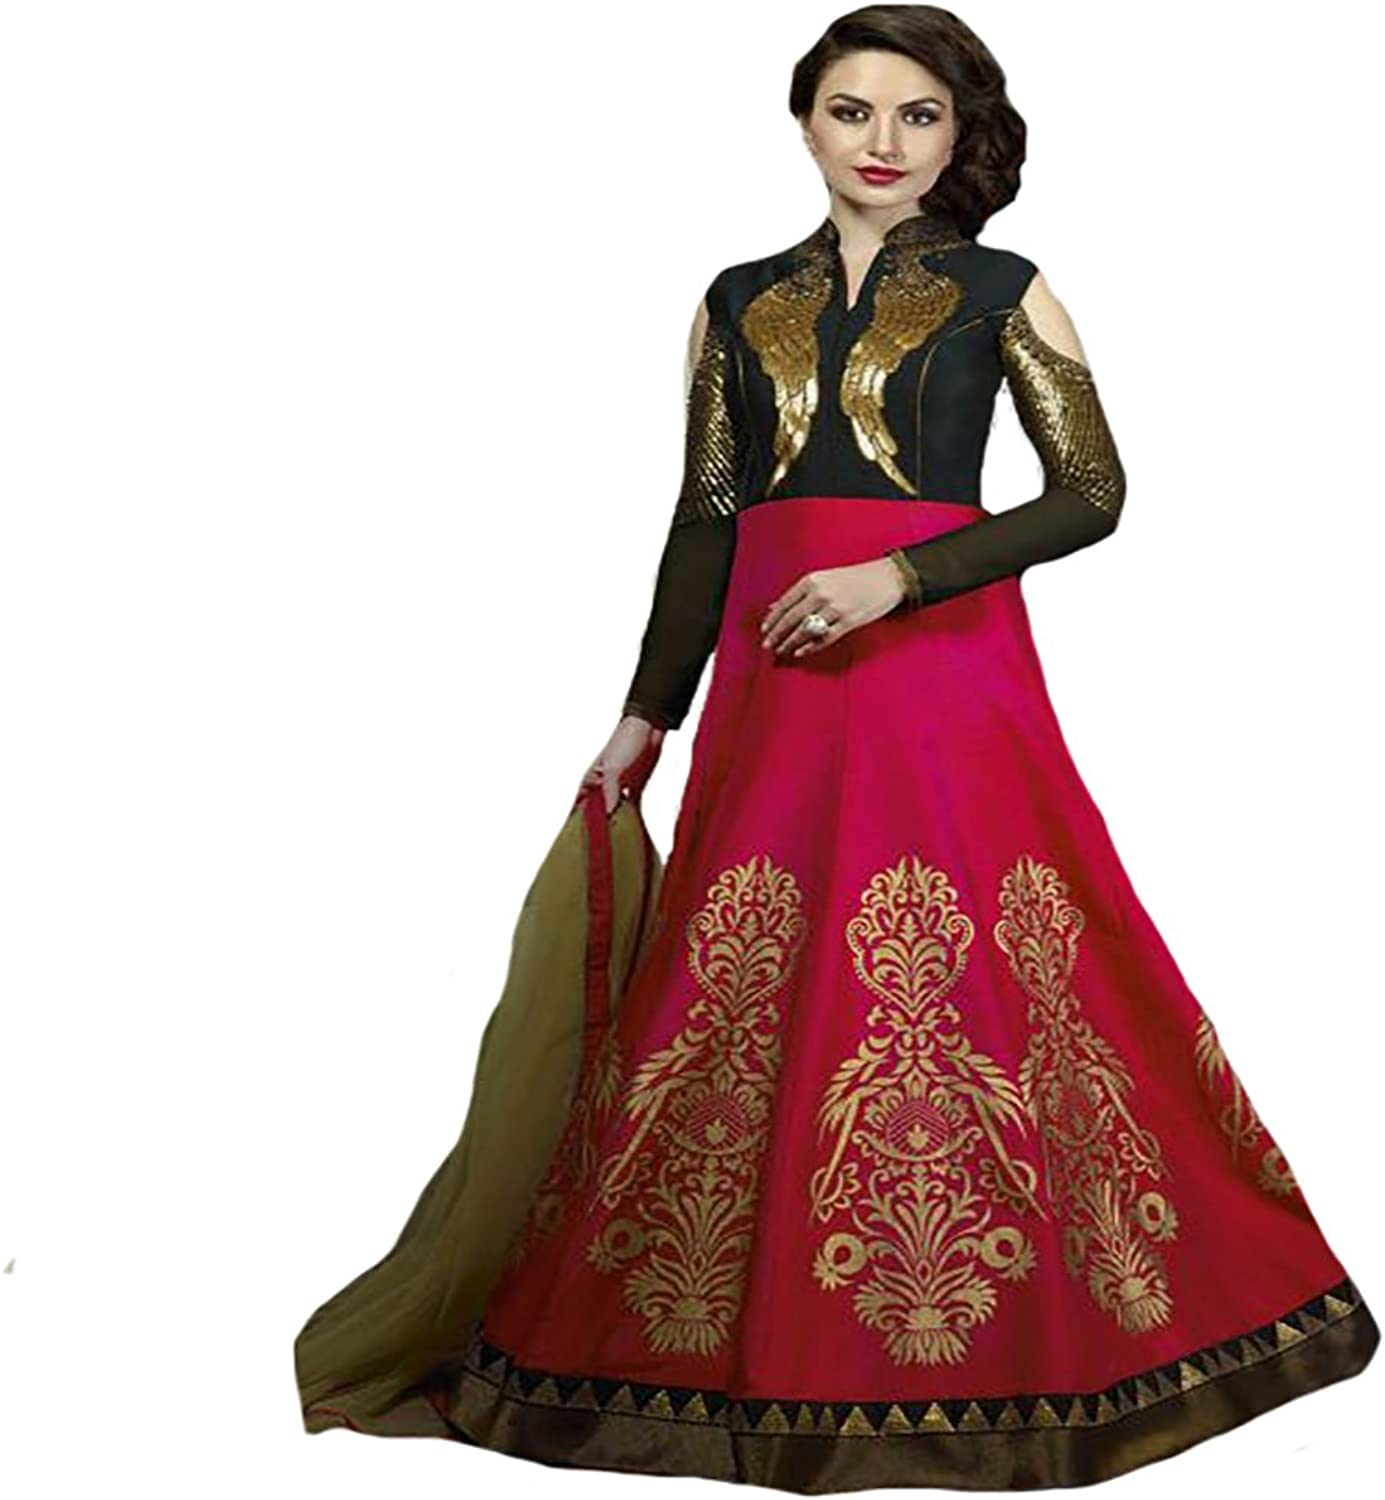 New Launched Collection Indian Gown Anarkali Salwar Kameez suit Ceremony wedding